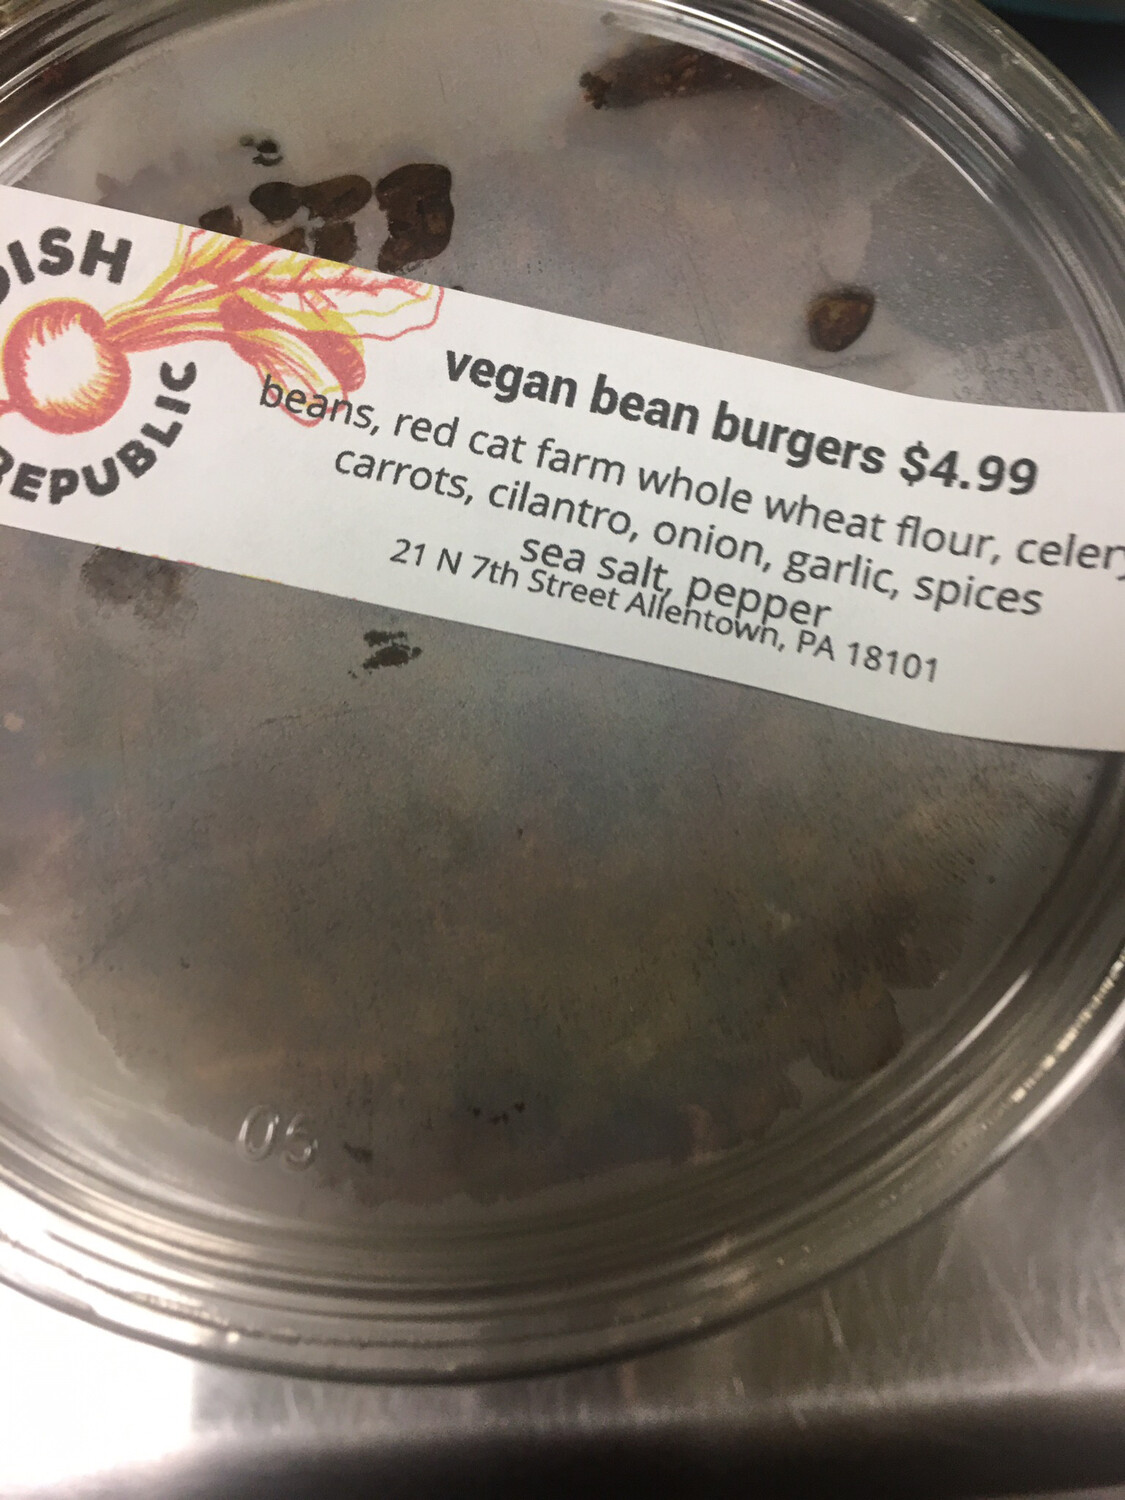 Radish Republic vegan bean burger